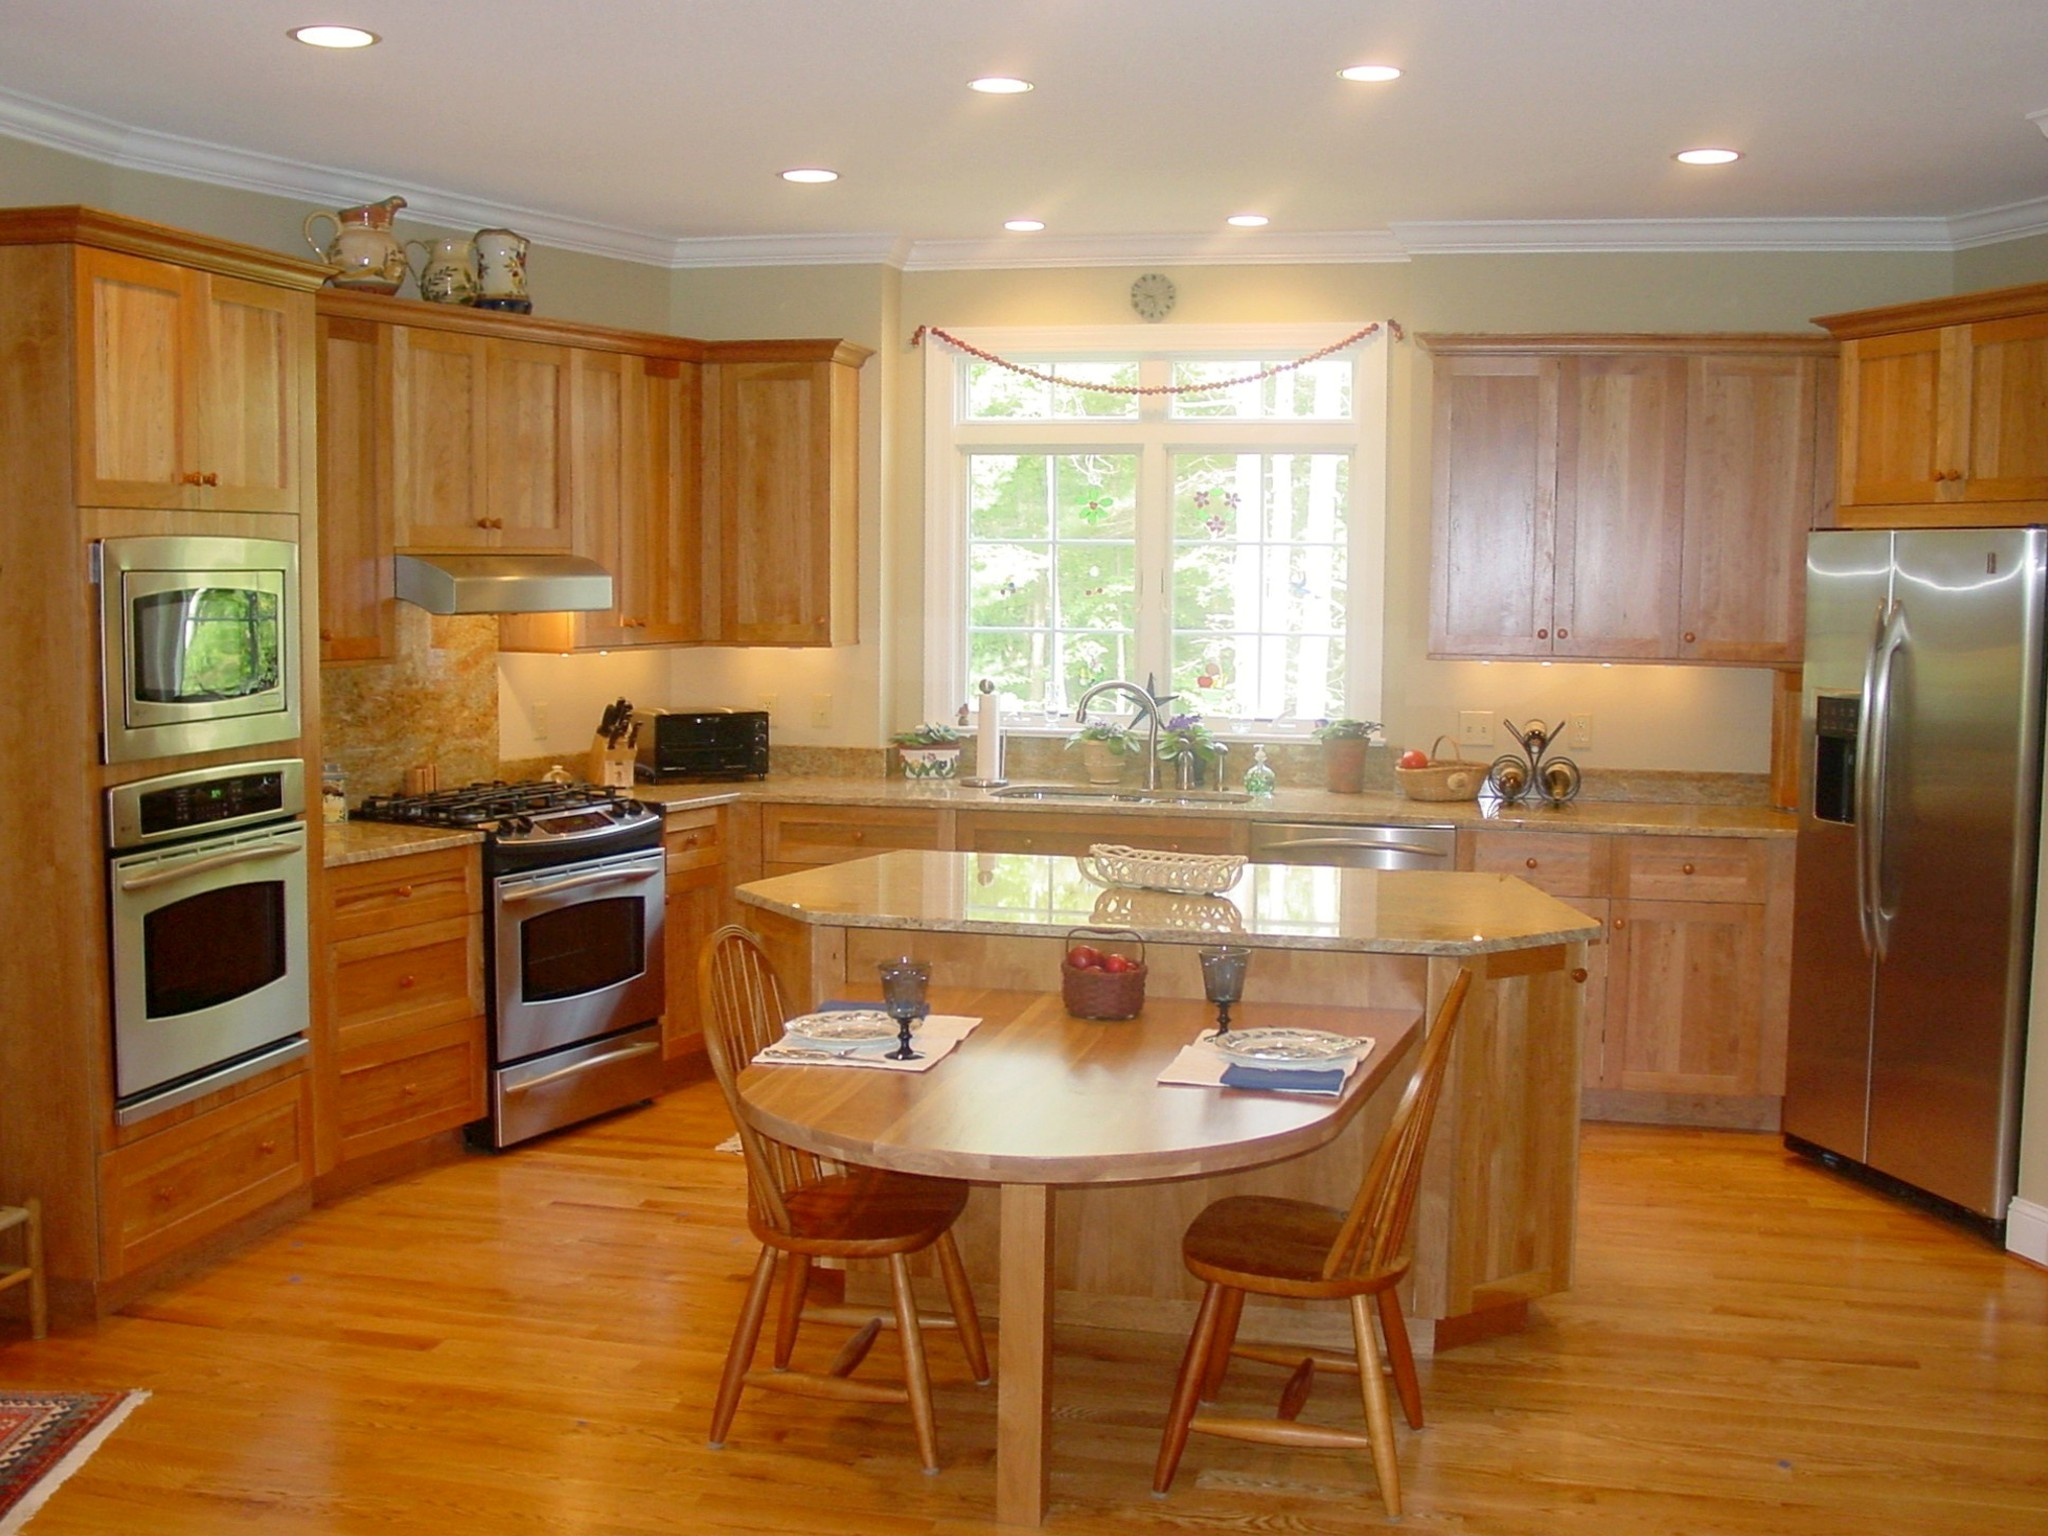 Adelphi Kitchens Cabinetry, Shaker Doorstyle in Natural Red Birch. GE Profile Appliances.